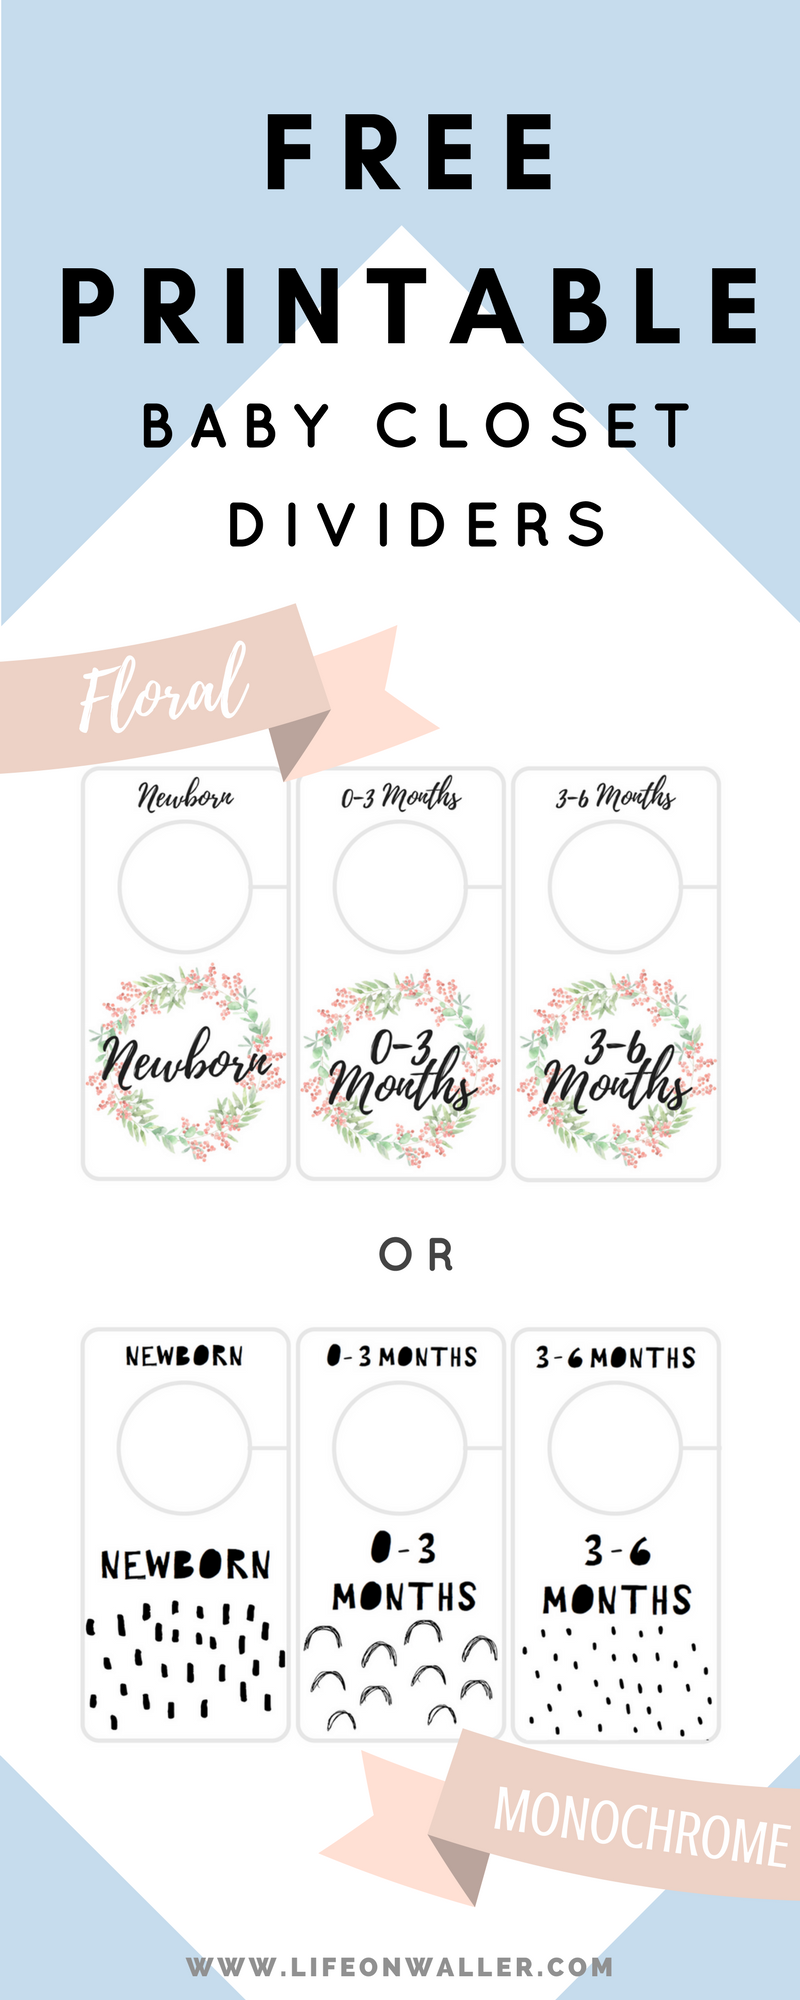 picture relating to Free Printable Closet Dividers referred to as Cost-free Printable Child Closet Dividers Preemie in direction of 24 Weeks - 2